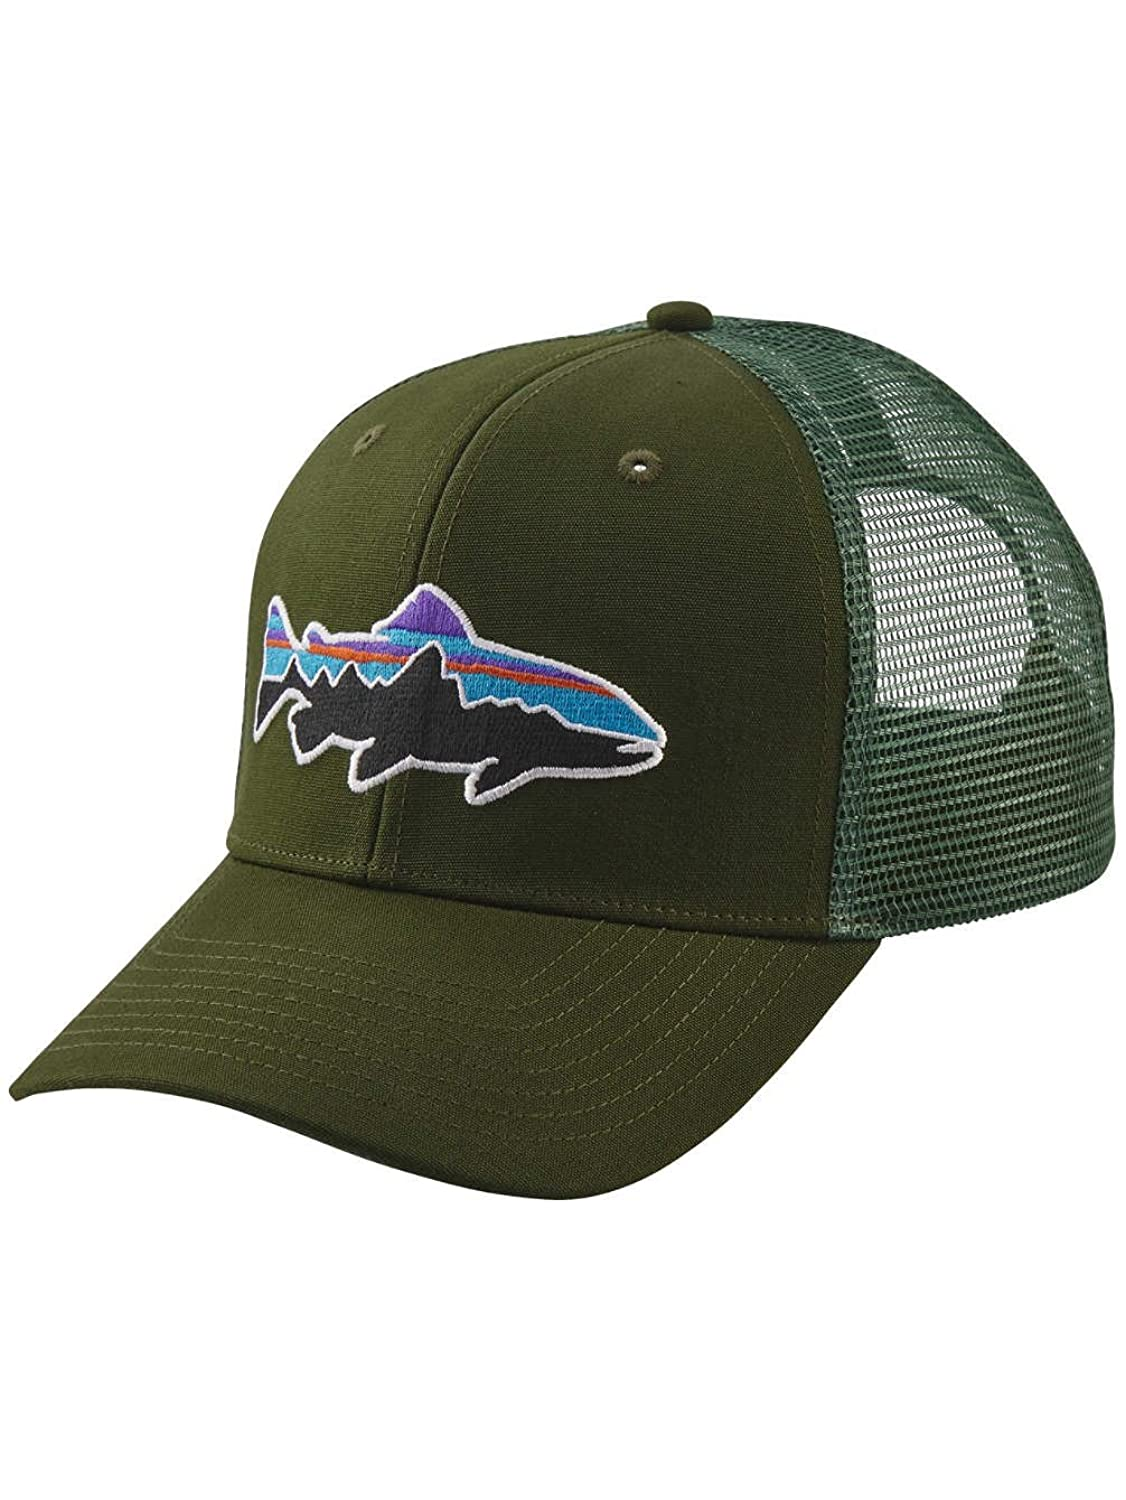 Patagonia Fitz Roy Trout Trucker Hat B0714FCT86  Glades Green One Size